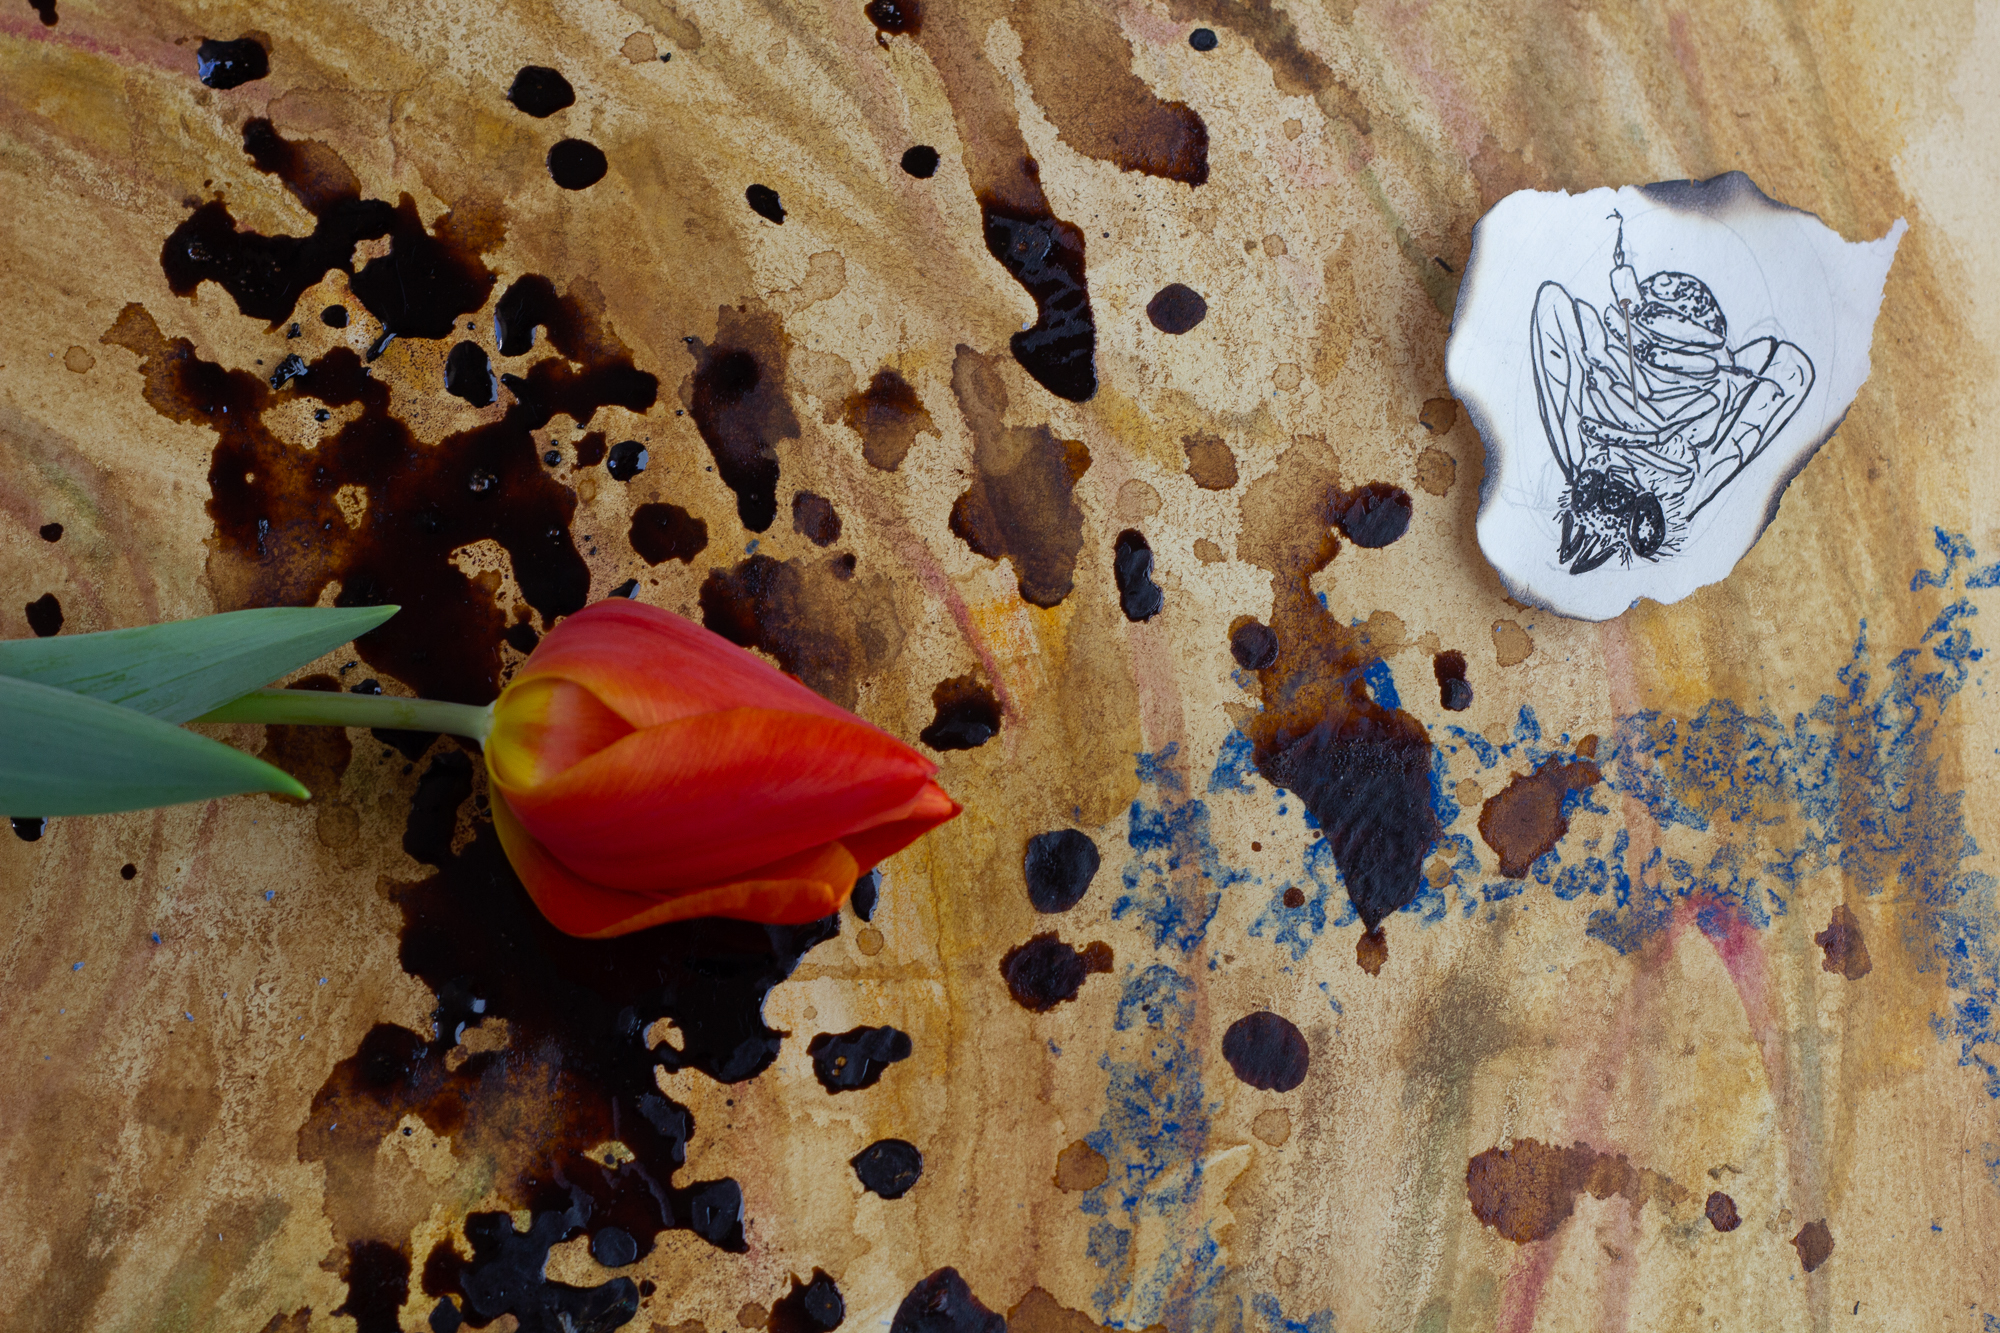 Close-up of the tulip petals and illustration of a dead bee